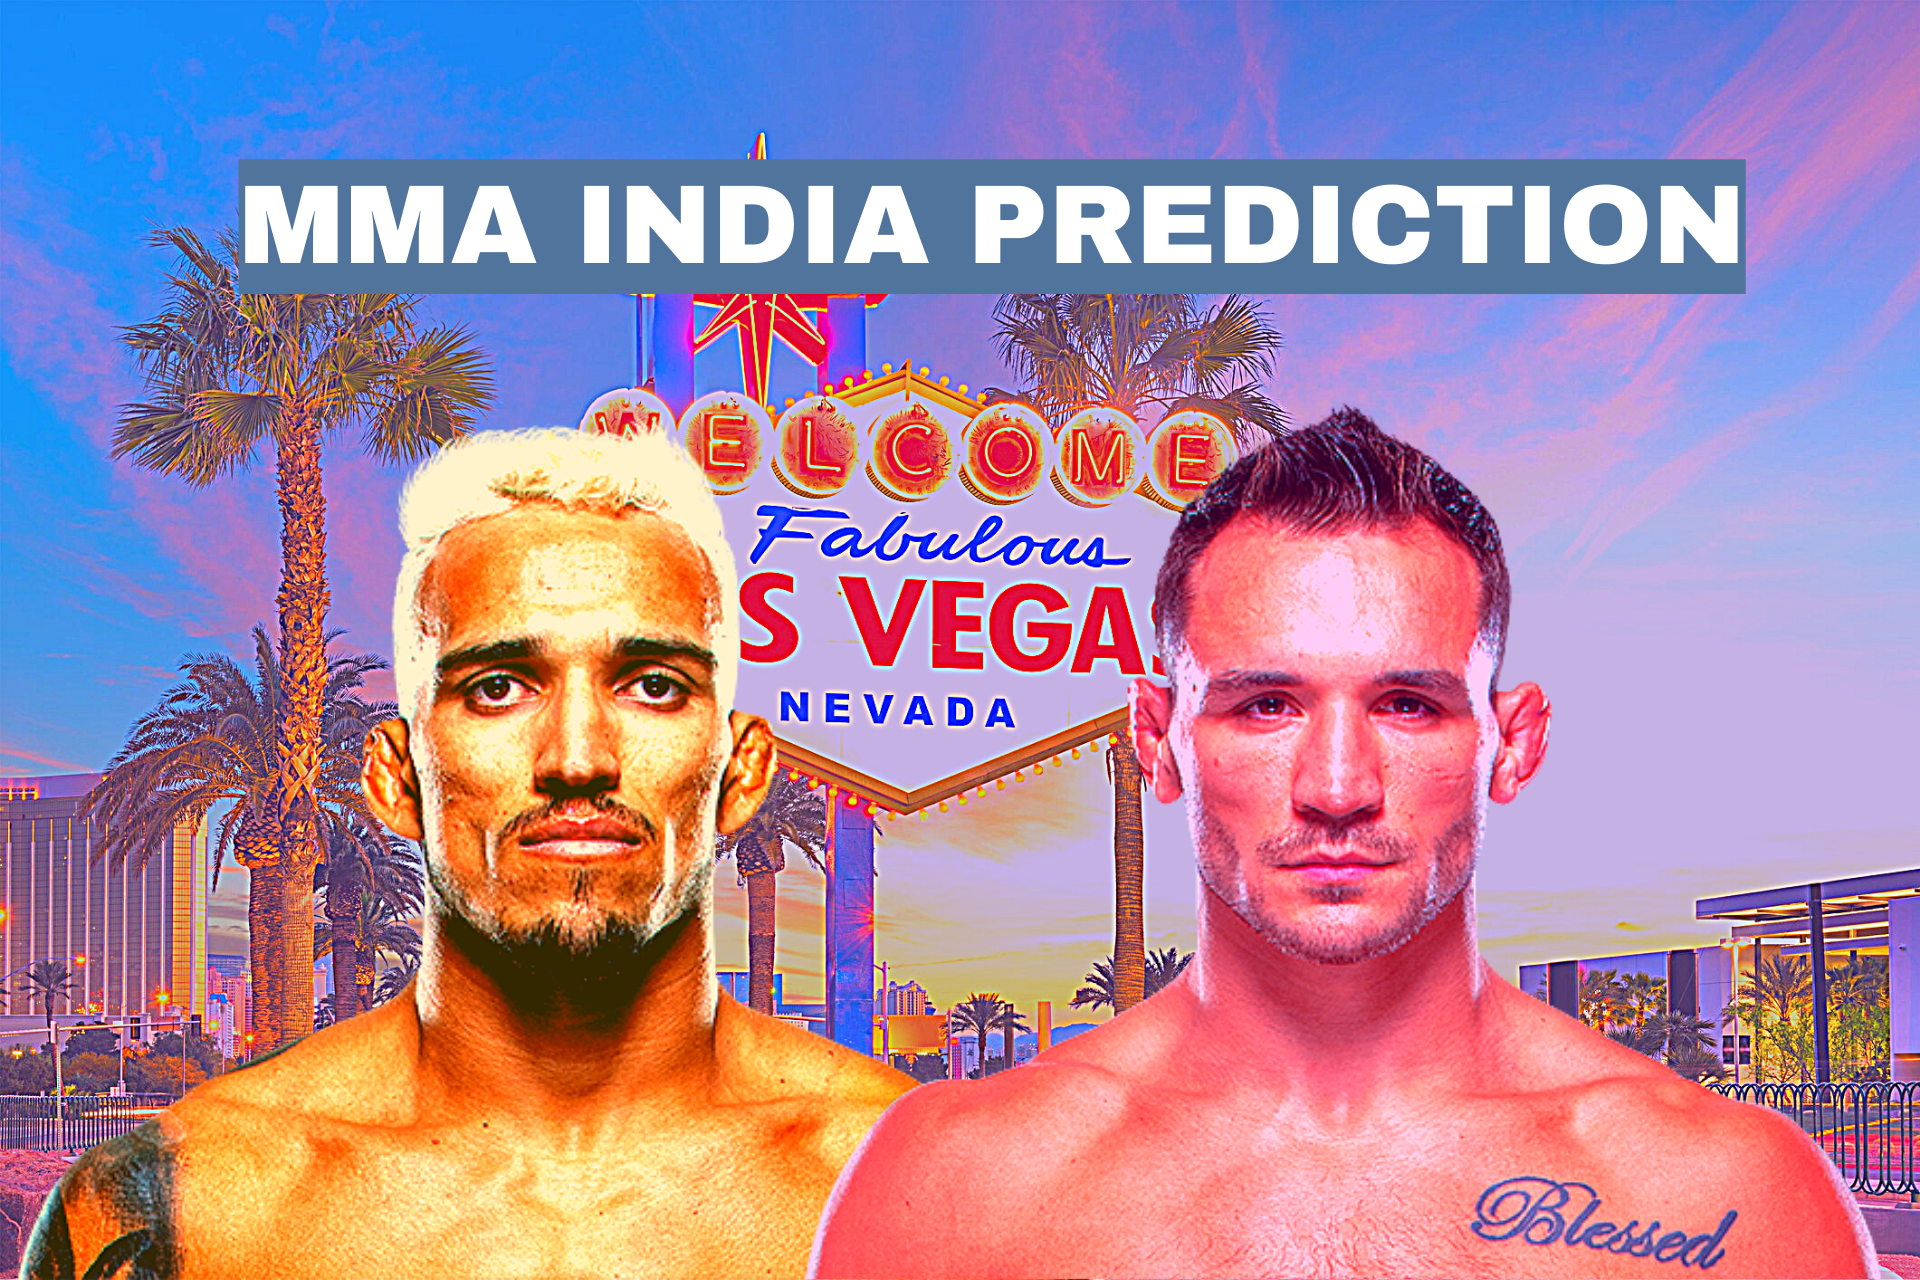 UFC 262: Oliveira vs Chandler betting odds and prediction - Chandler